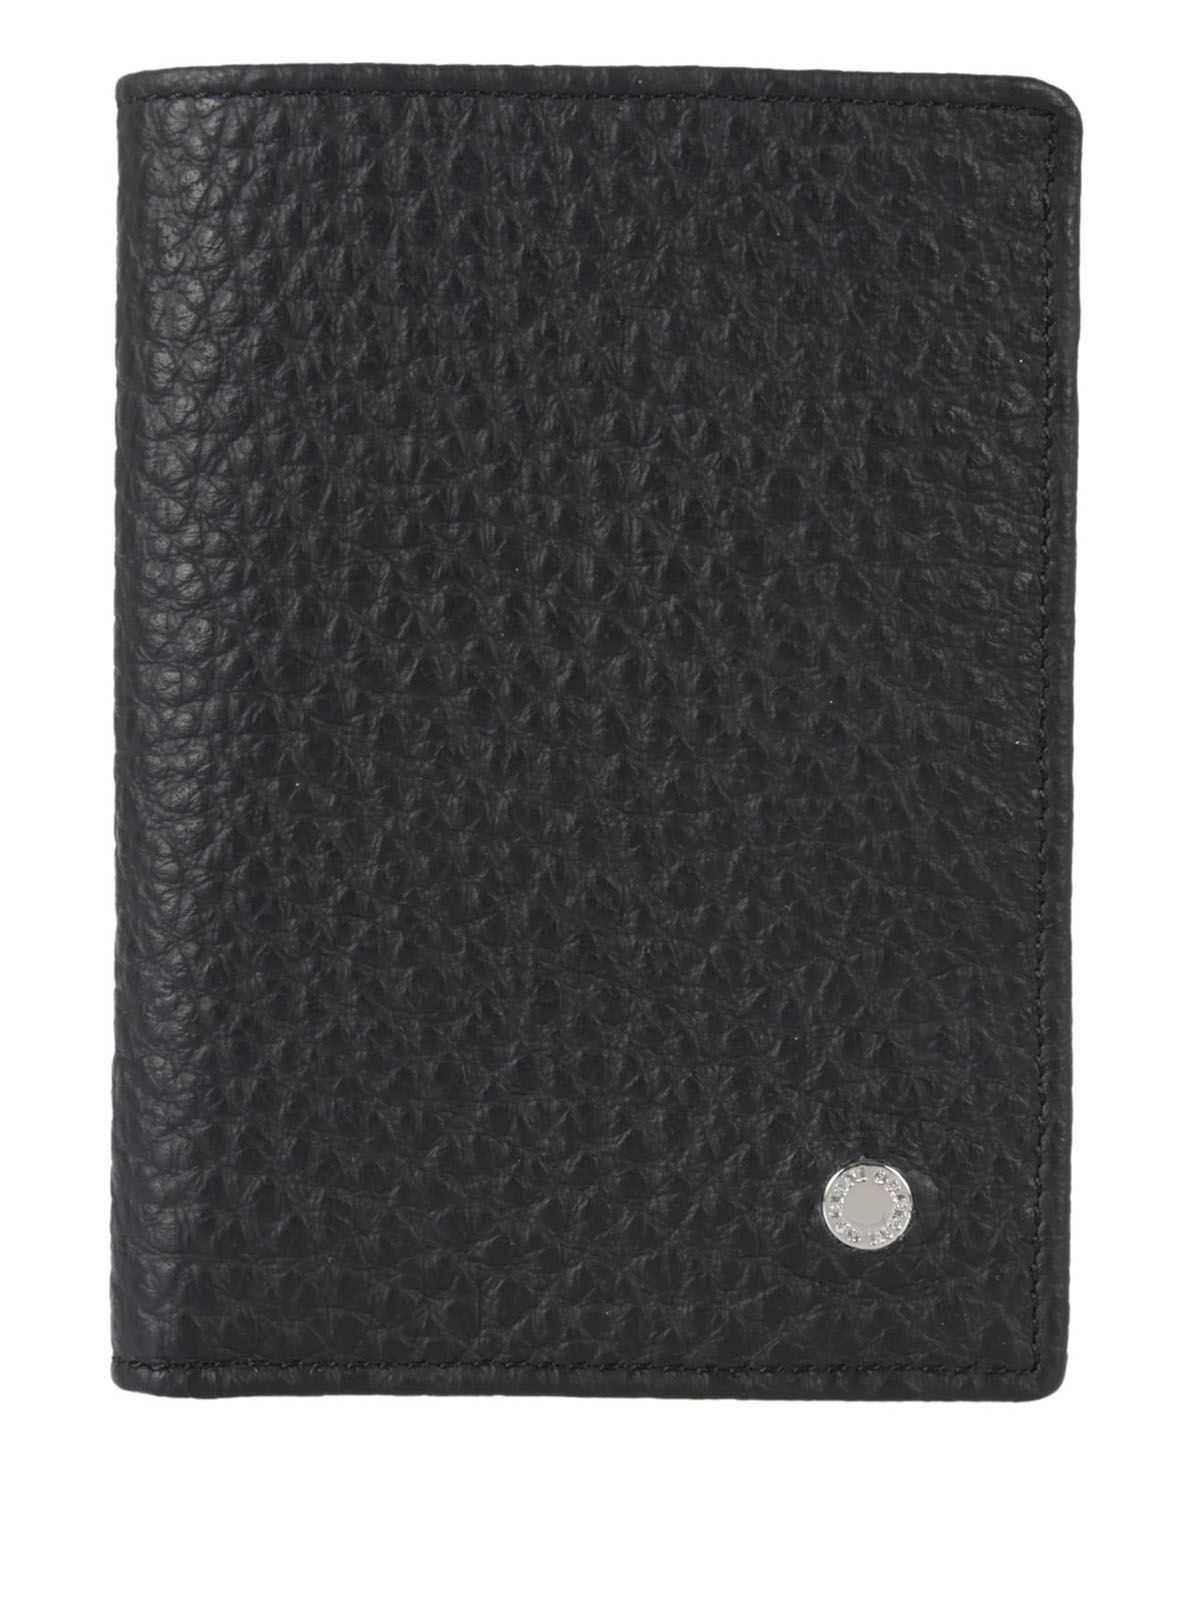 Orciani Large Billfold Wallet